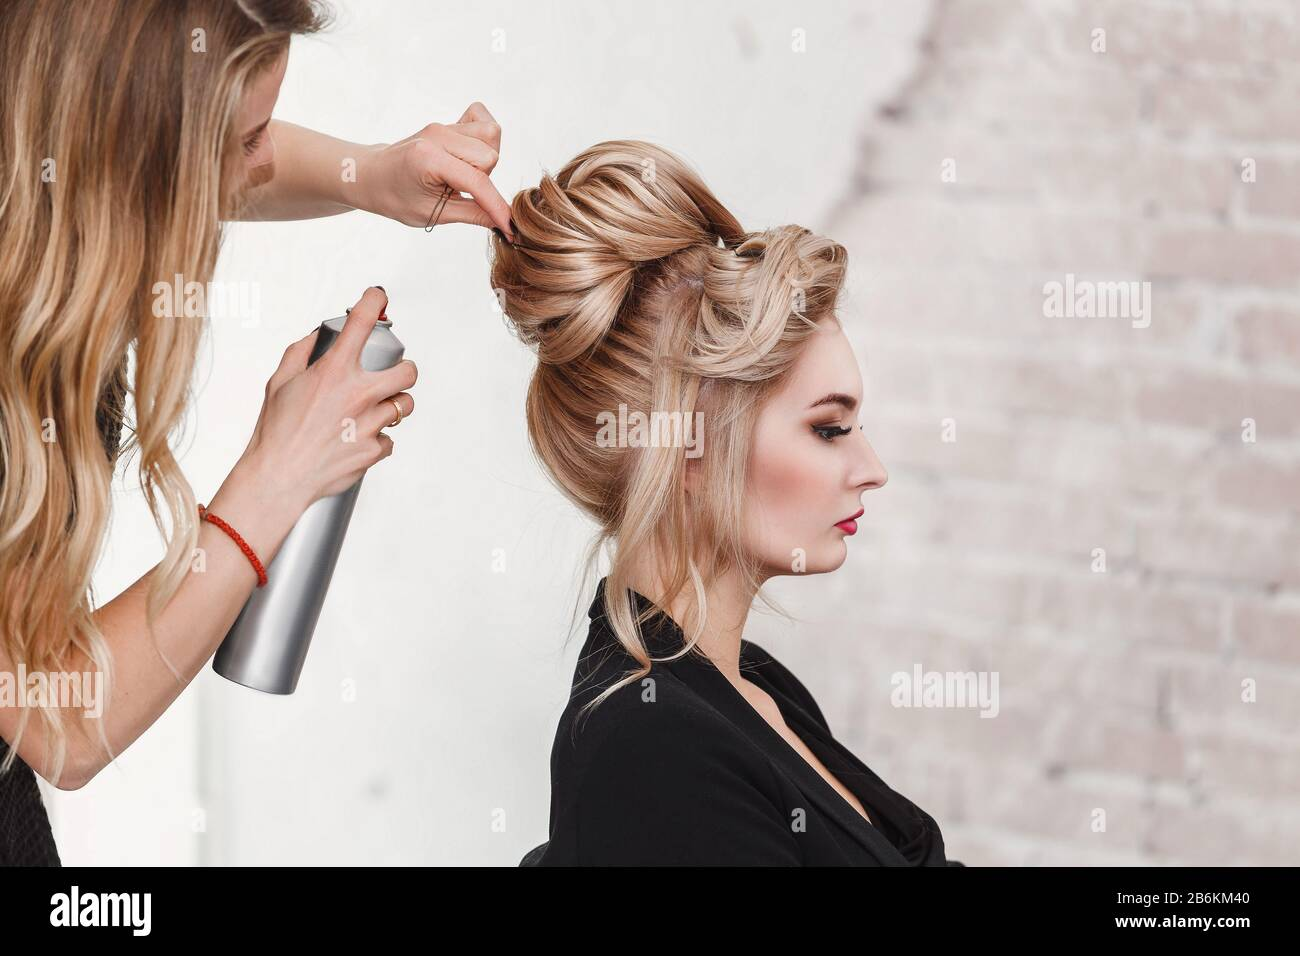 Professional Hairdresser Using Hair Spray On Client Business Woman Hair At Beauty Salon Stock Photo Alamy